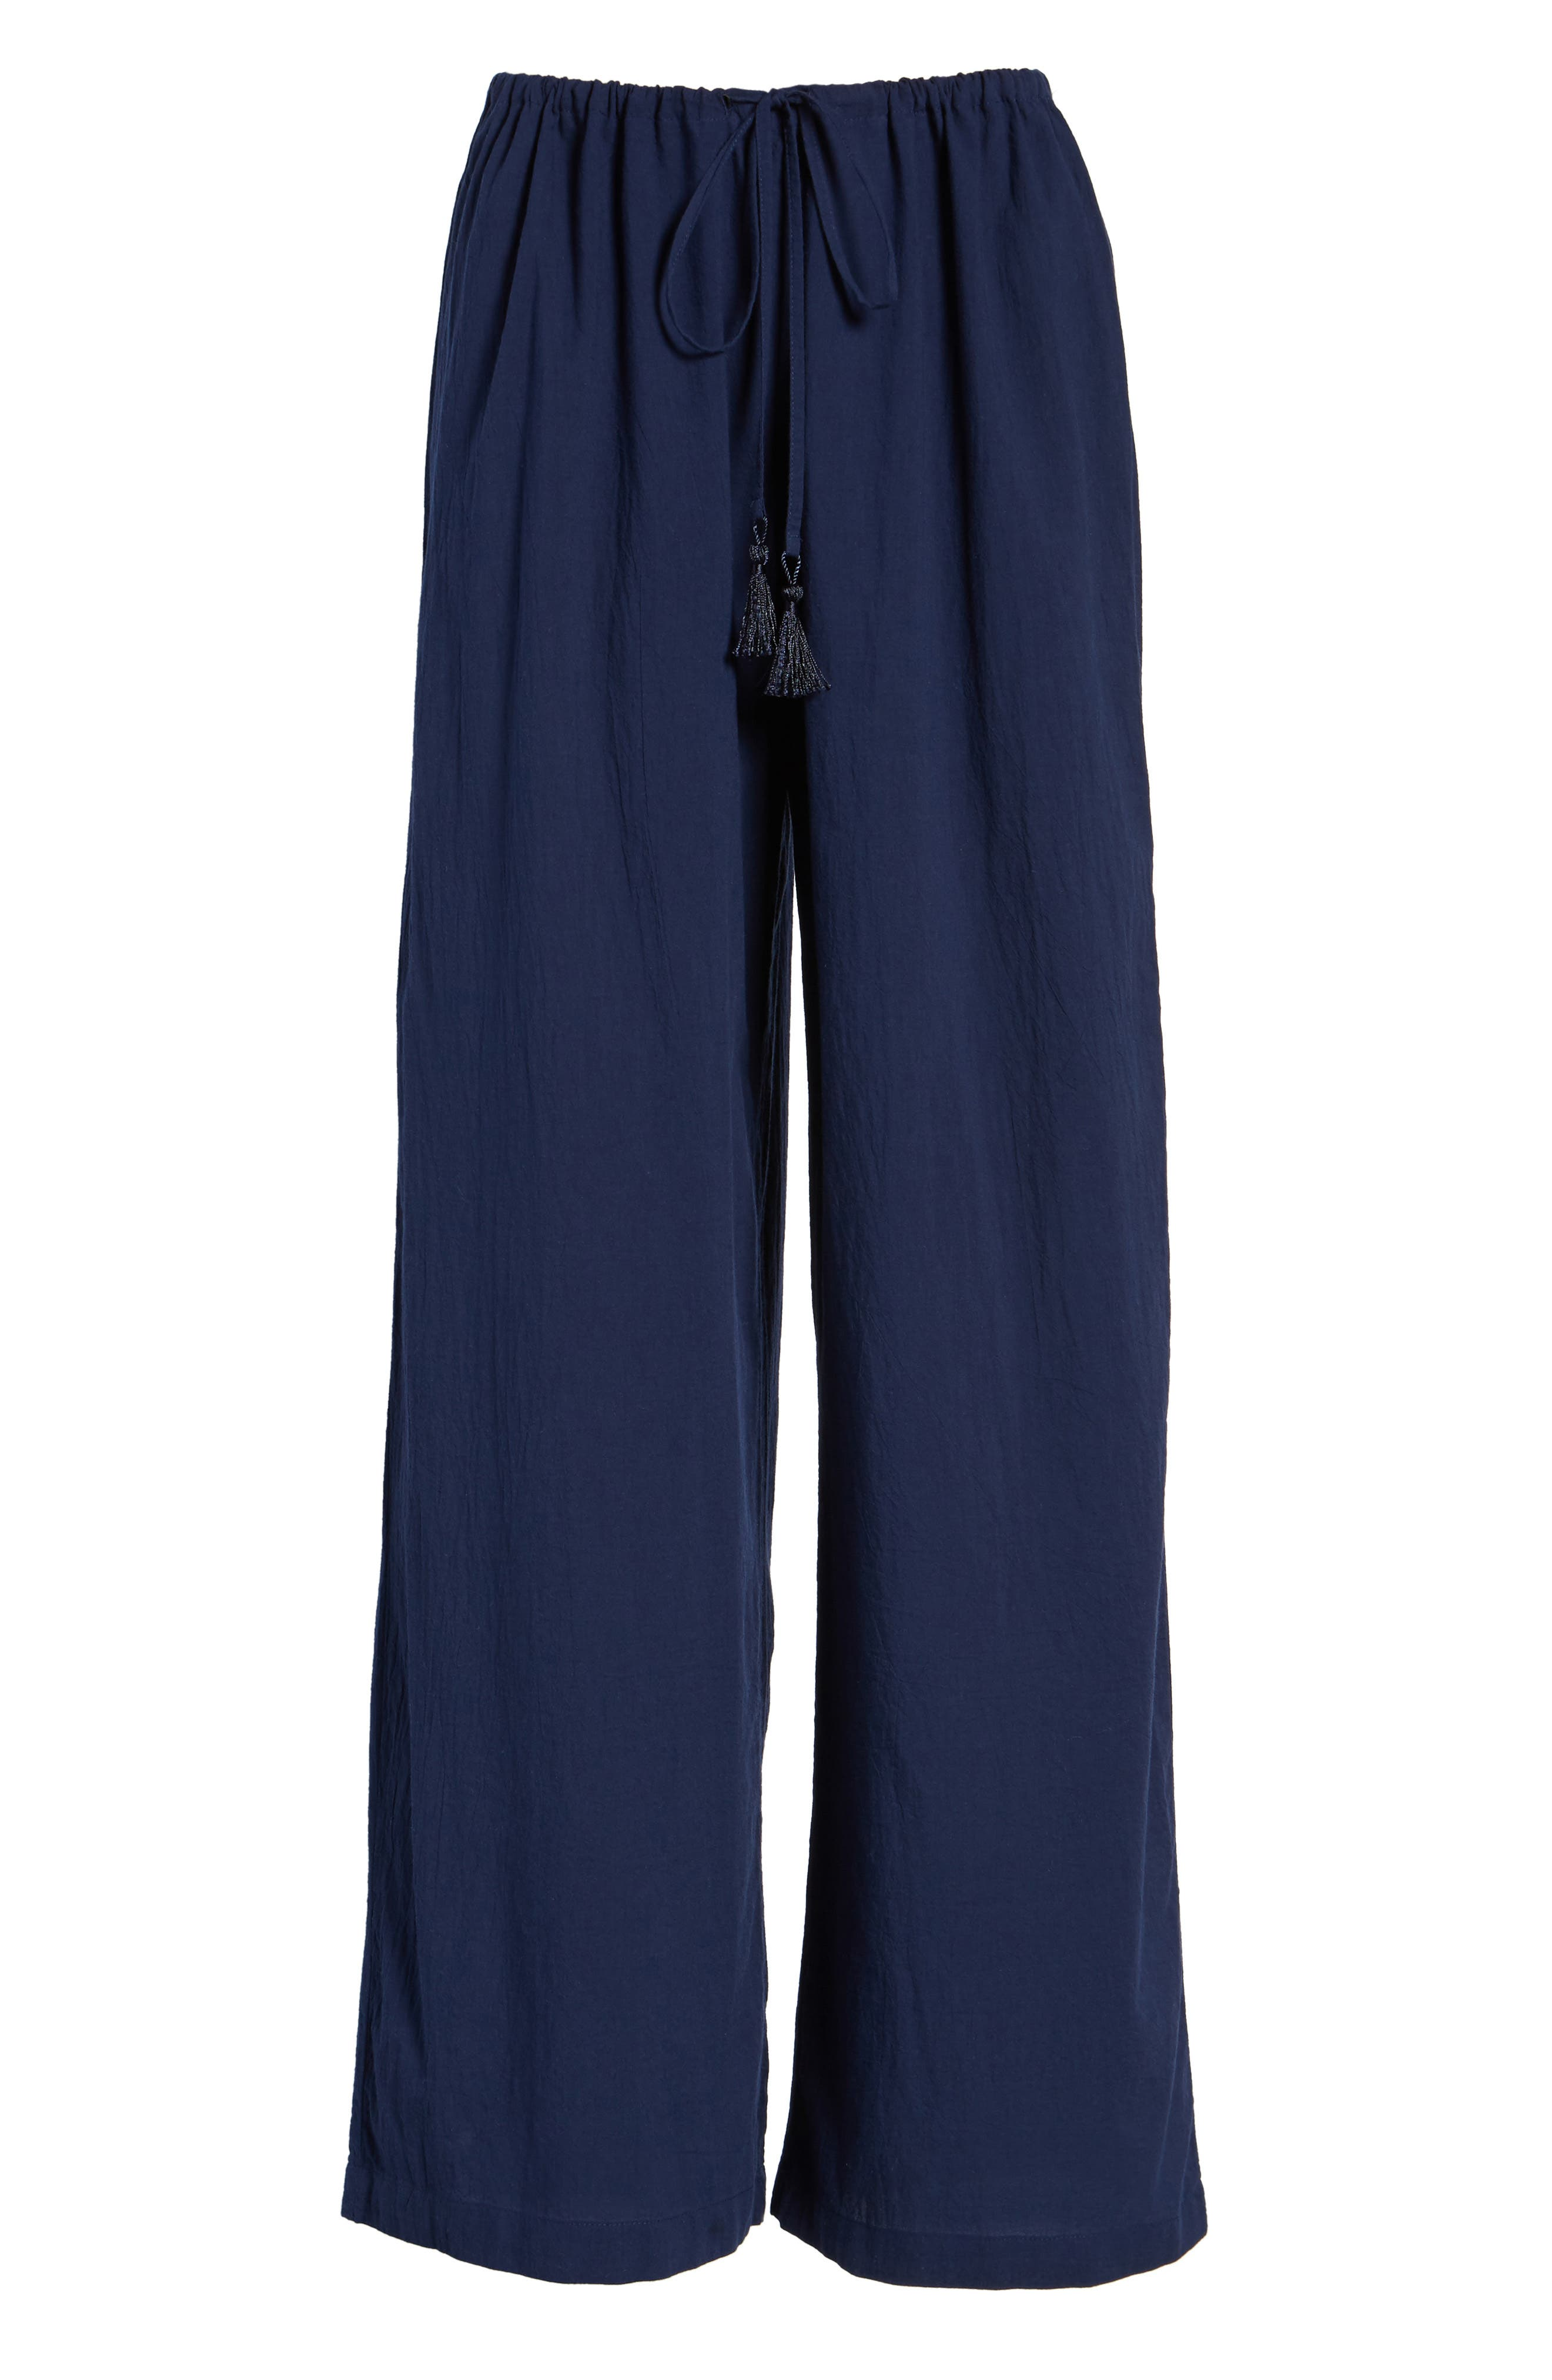 Cover-Up Pants,                             Main thumbnail 1, color,                             Mare Navy